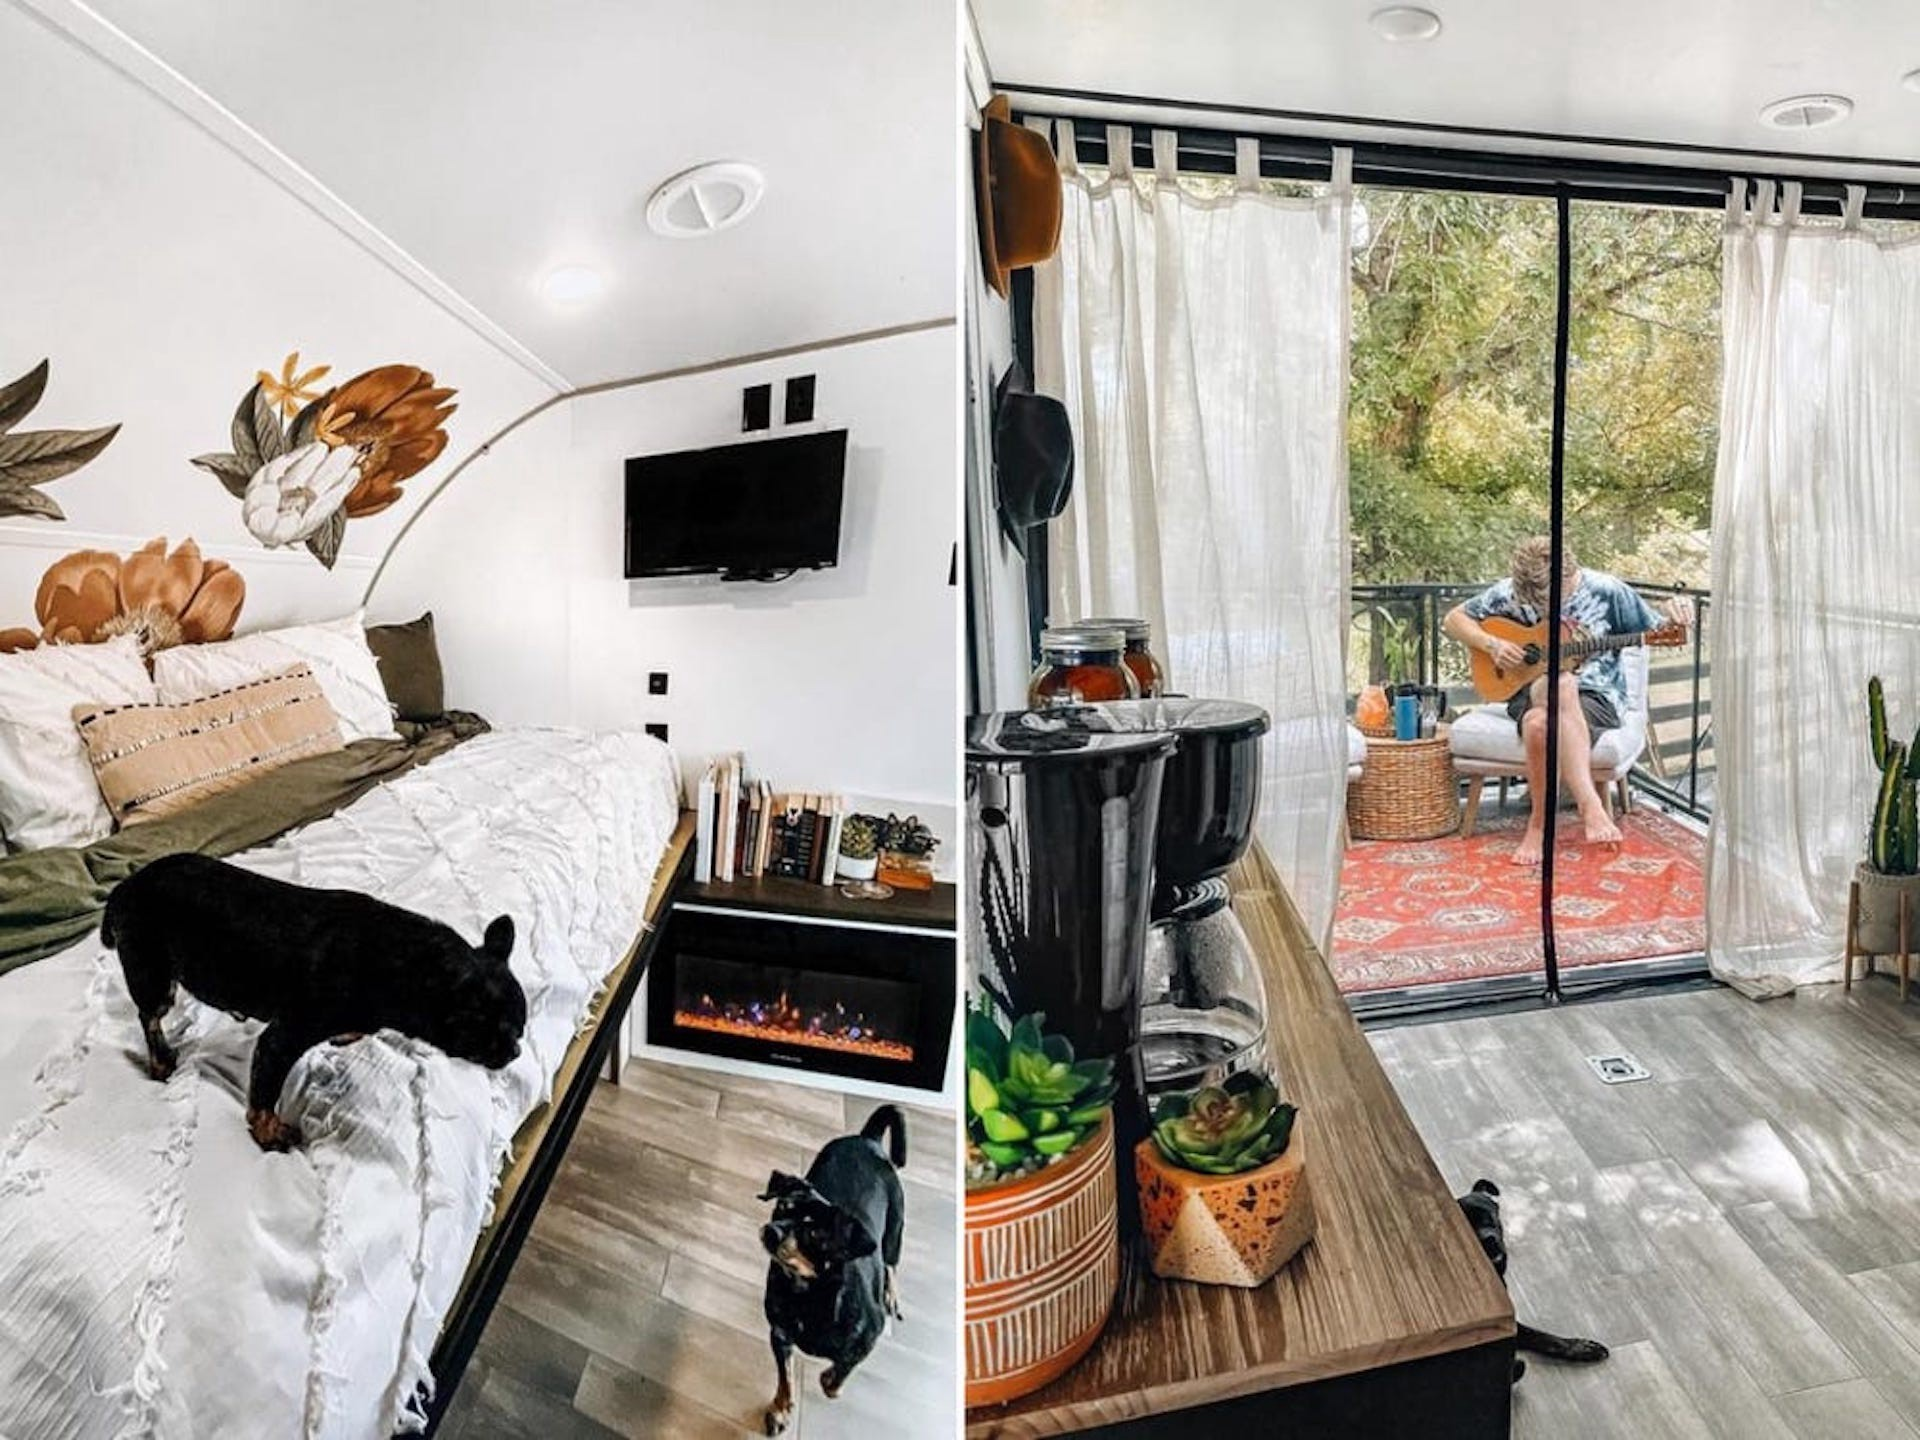 Insider Kirsten and Devin's 100-square-foot toy hauler.